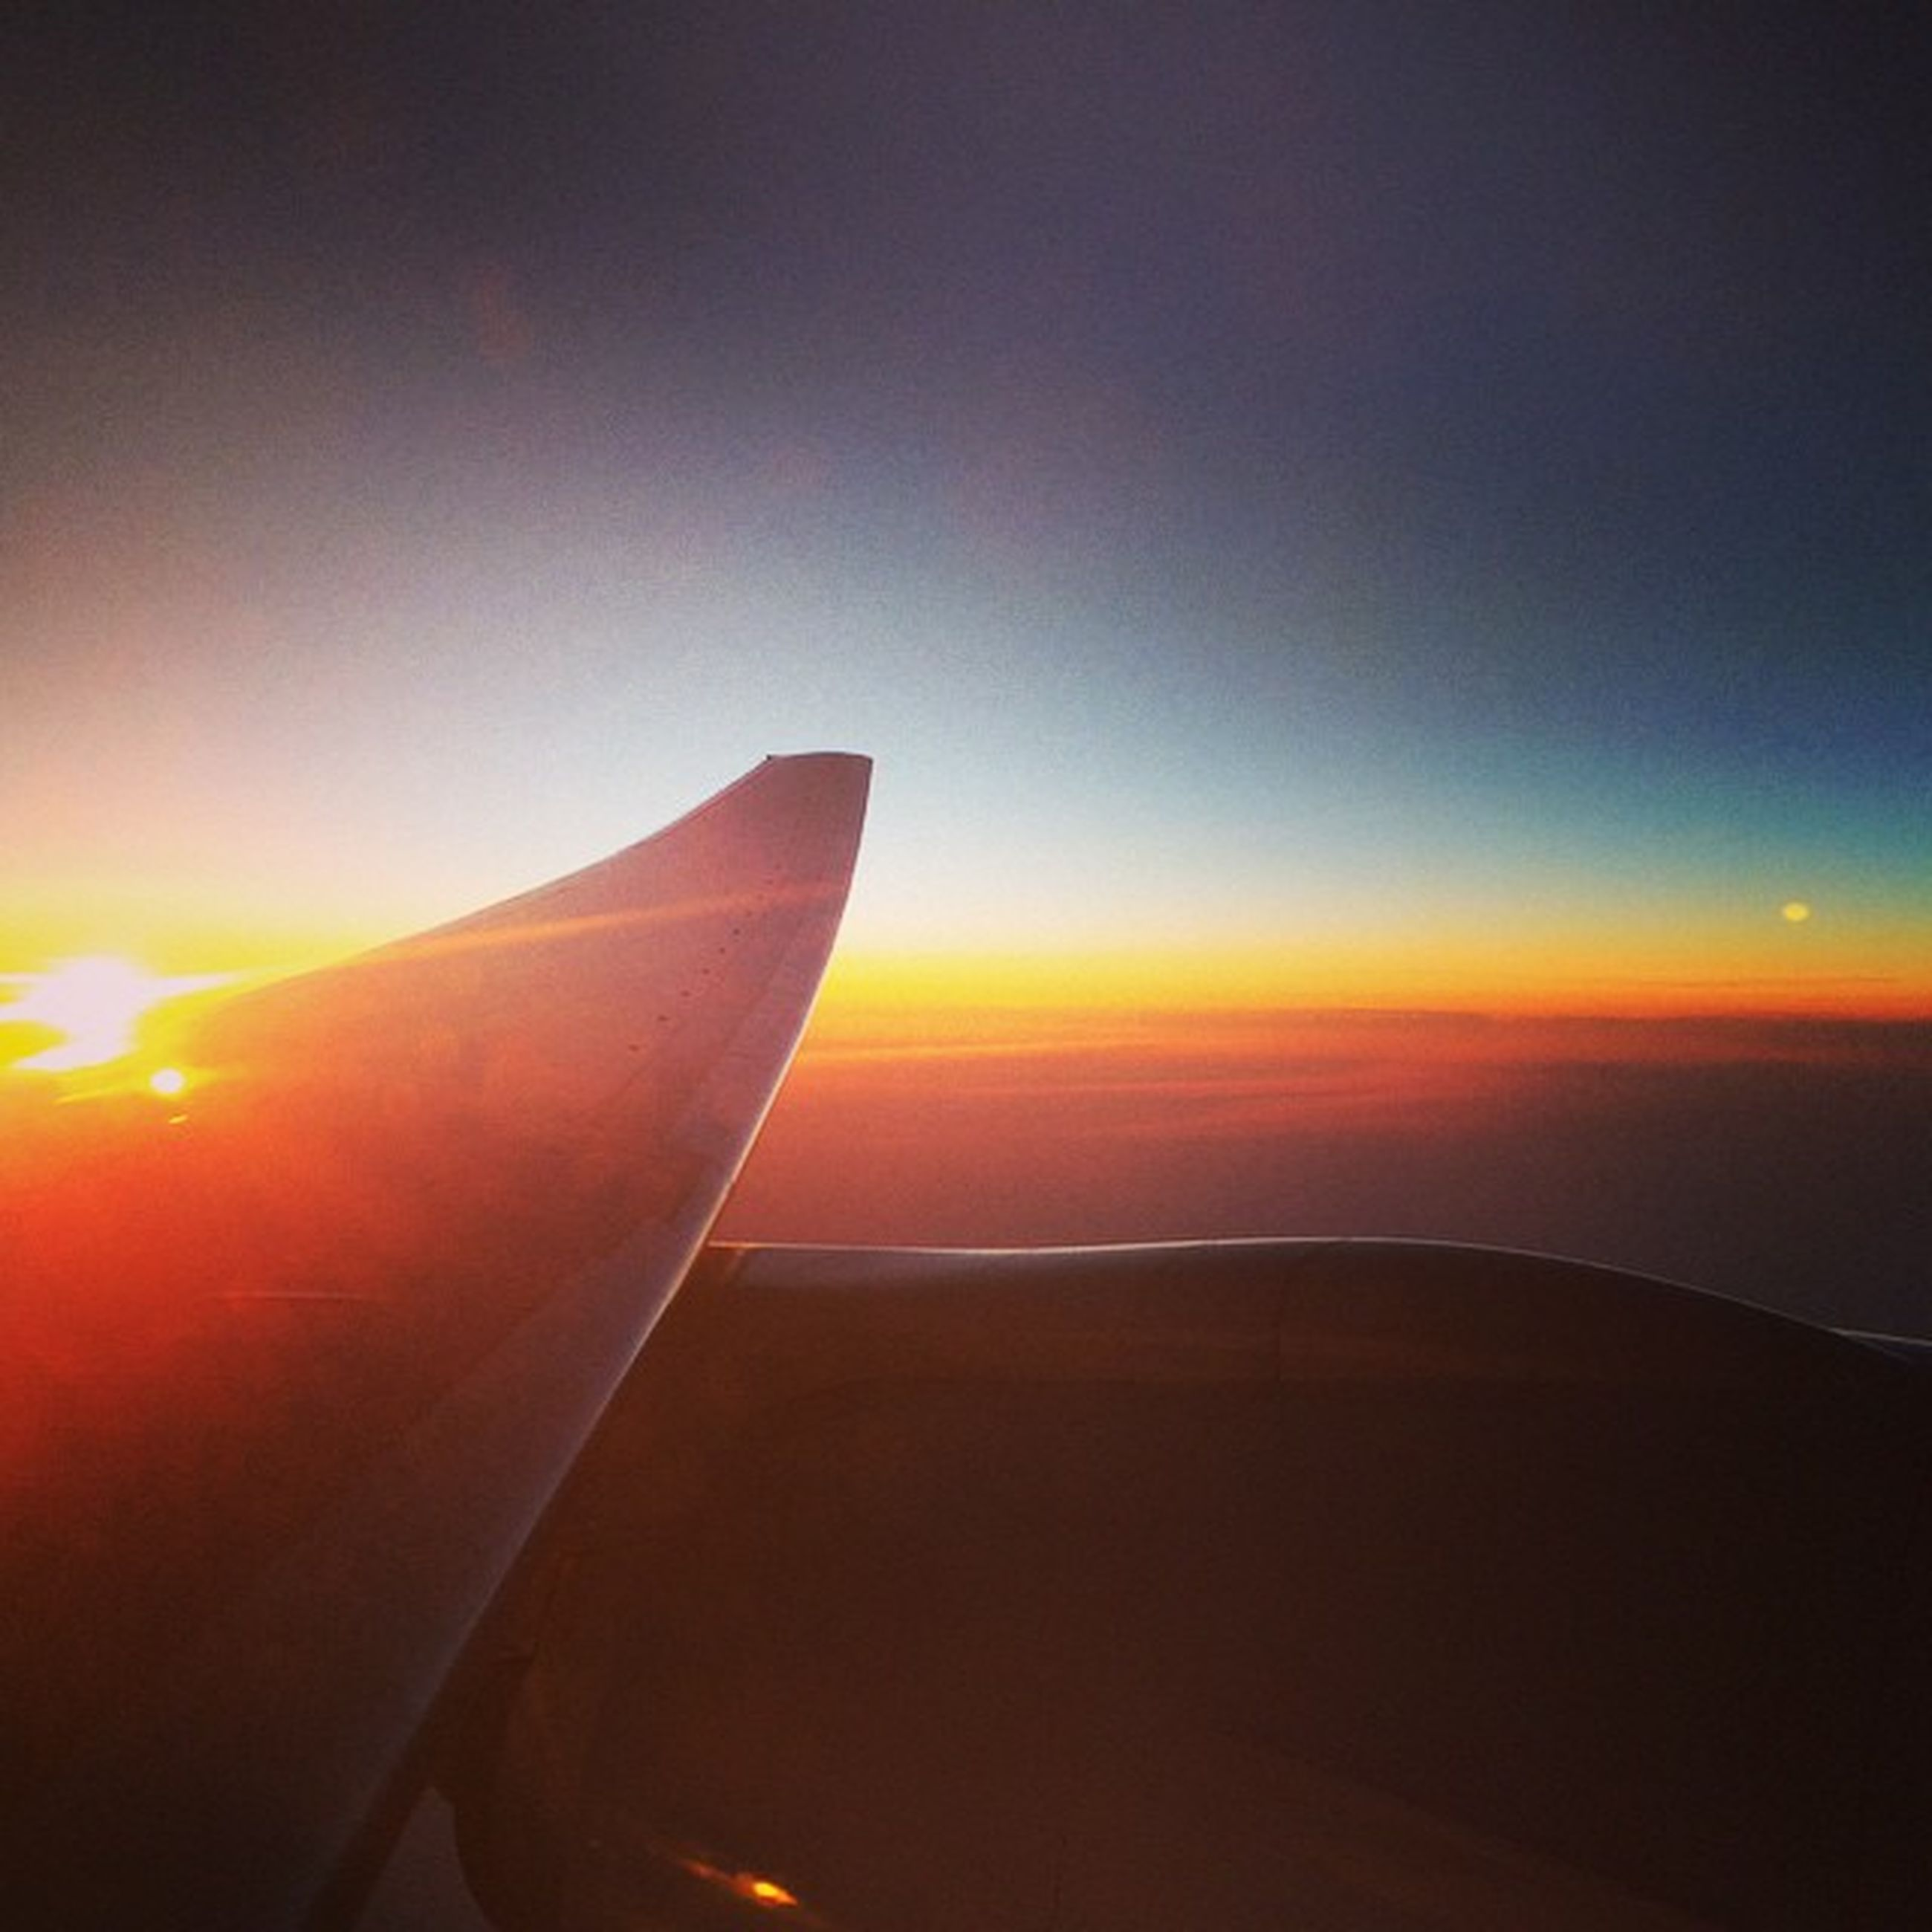 sunset, airplane, aircraft wing, orange color, flying, scenics, sun, air vehicle, sky, part of, beauty in nature, transportation, cropped, nature, mode of transport, tranquil scene, copy space, aerial view, tranquility, mid-air